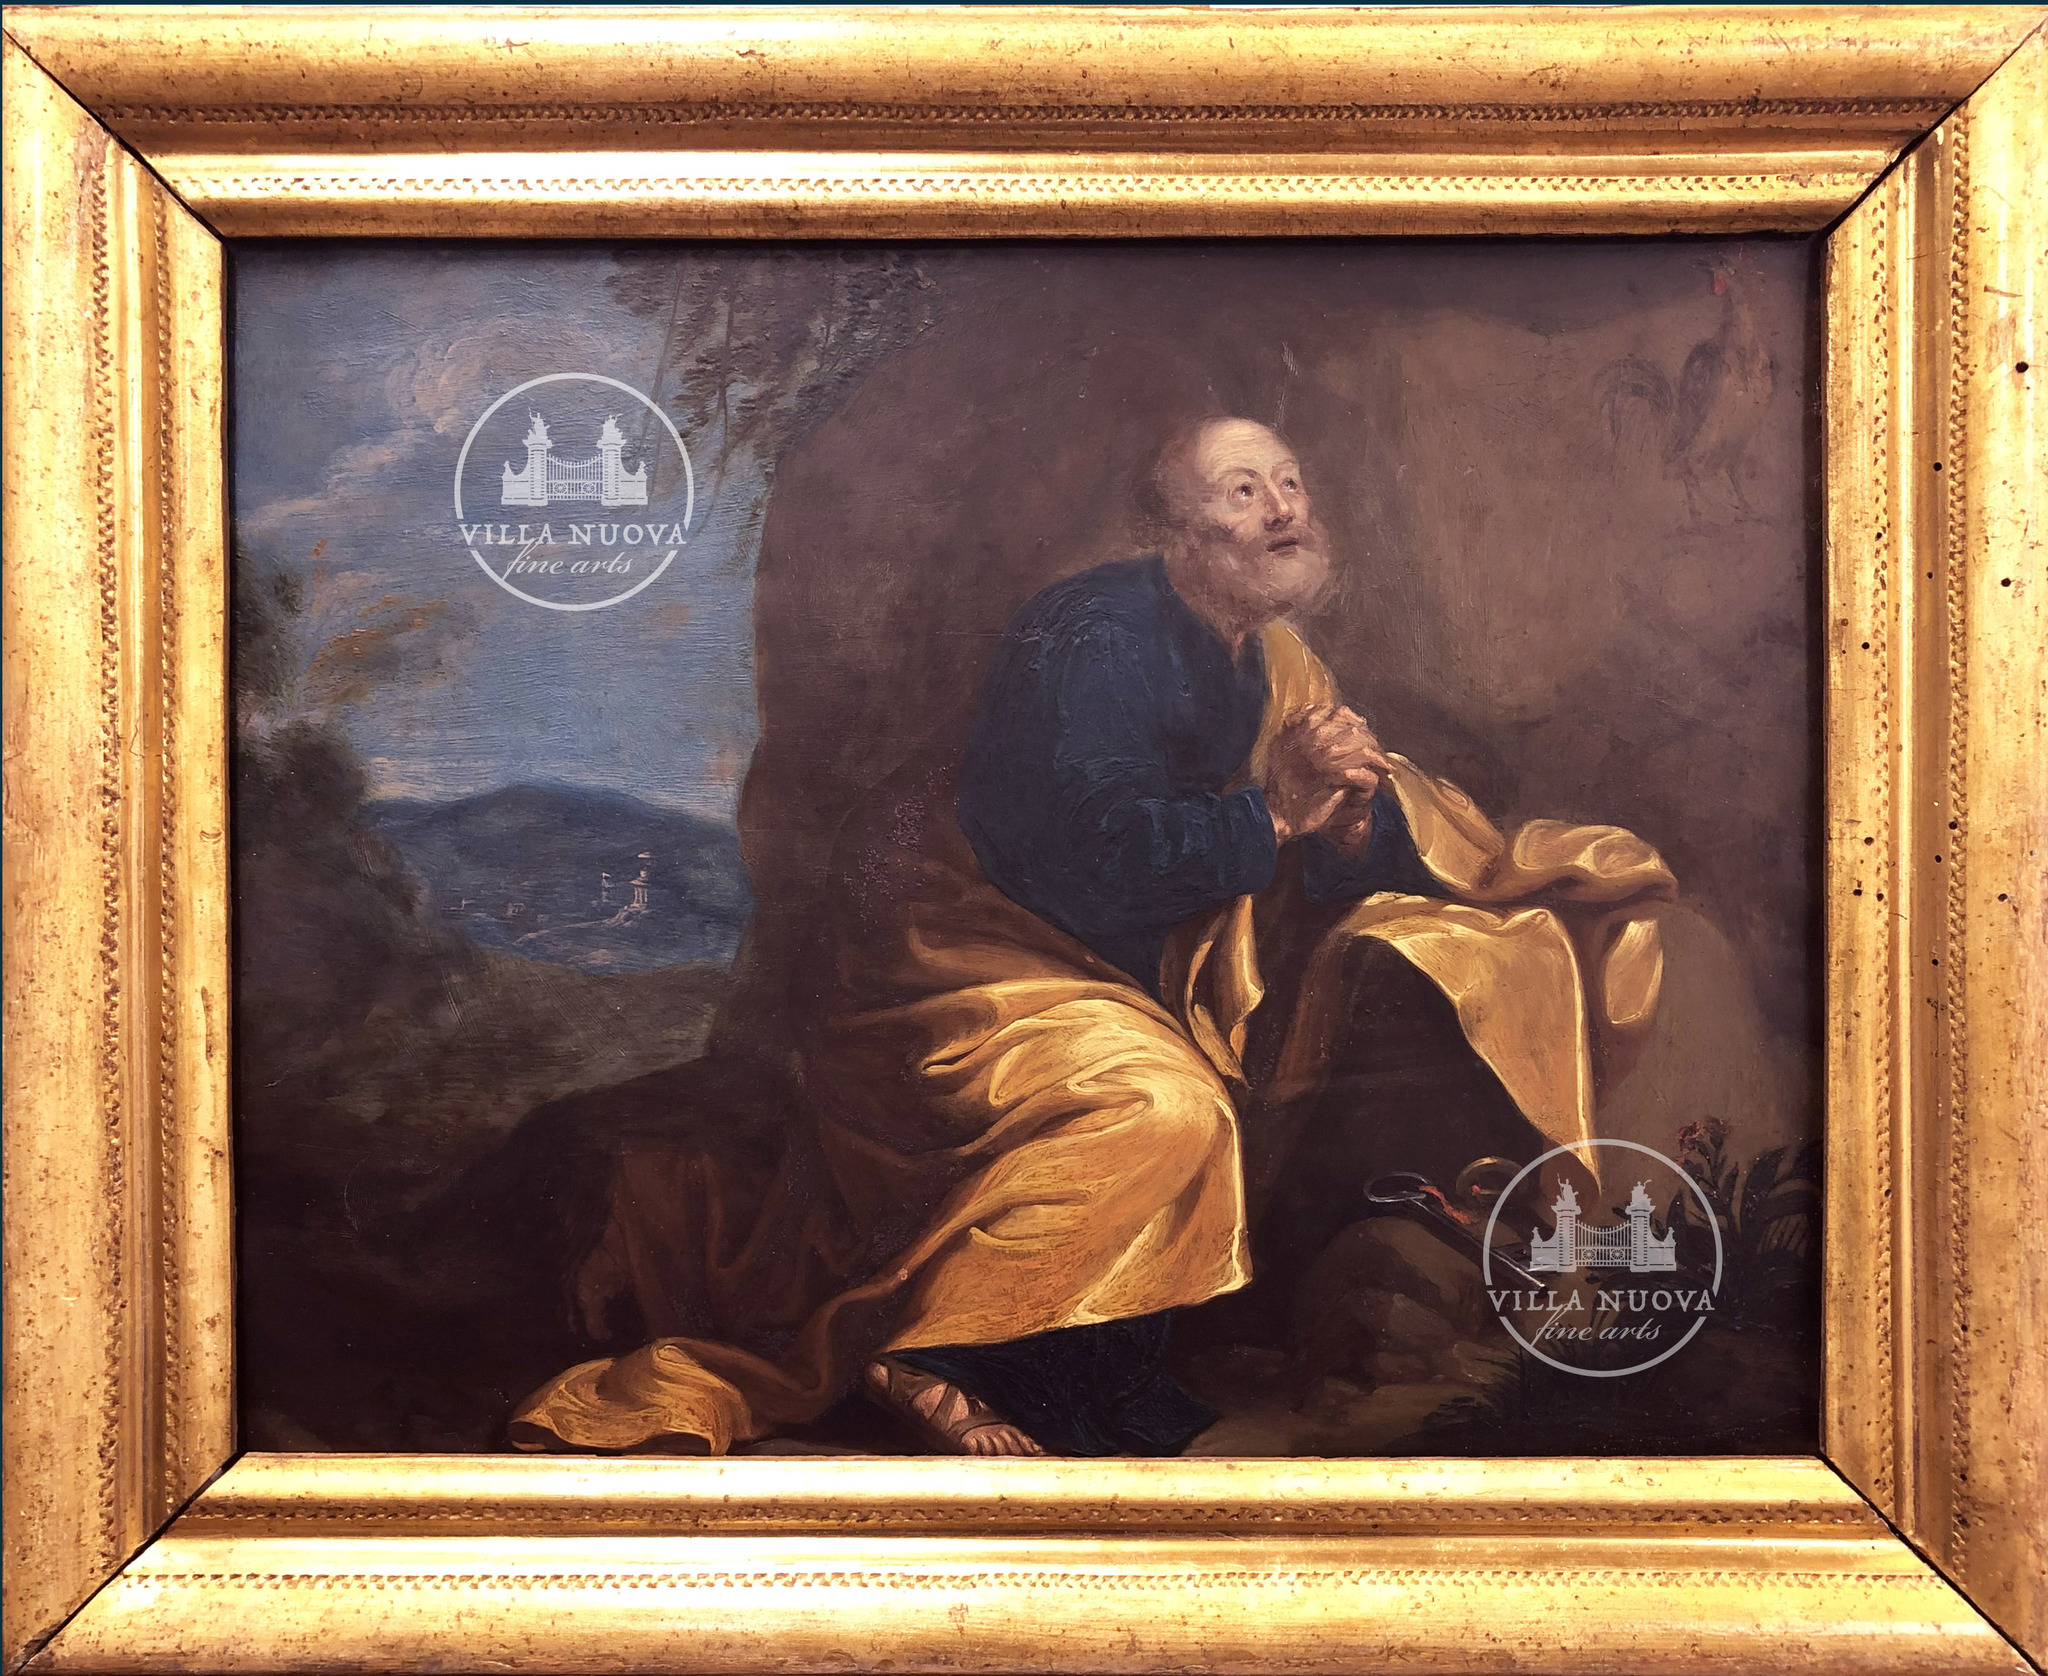 Simon DE VOS (Attrib.) (1603-1676) Saint Peter